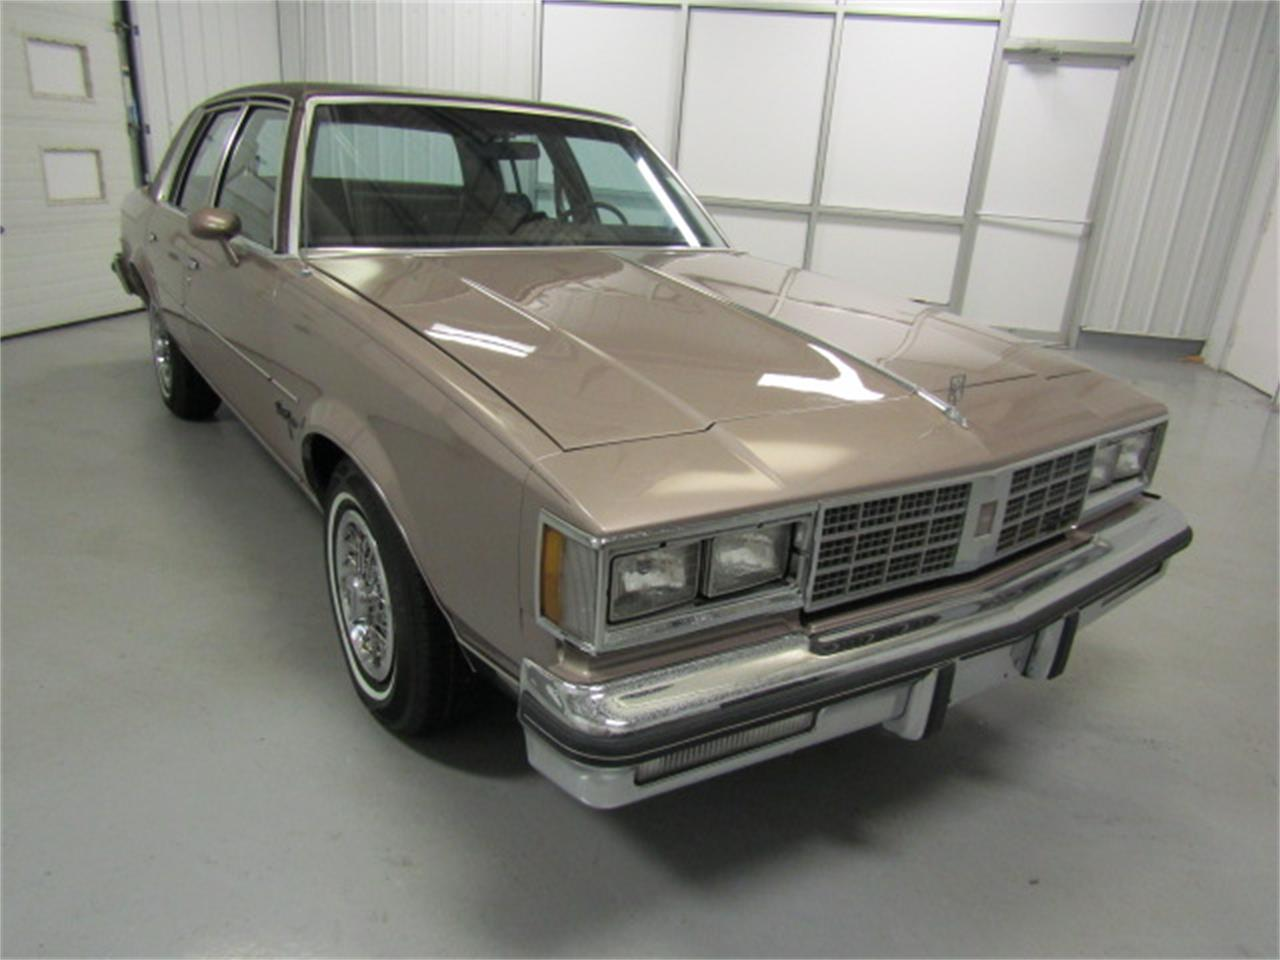 For Sale: 1984 Oldsmobile Cutlass Supreme in Christiansburg, Virginia